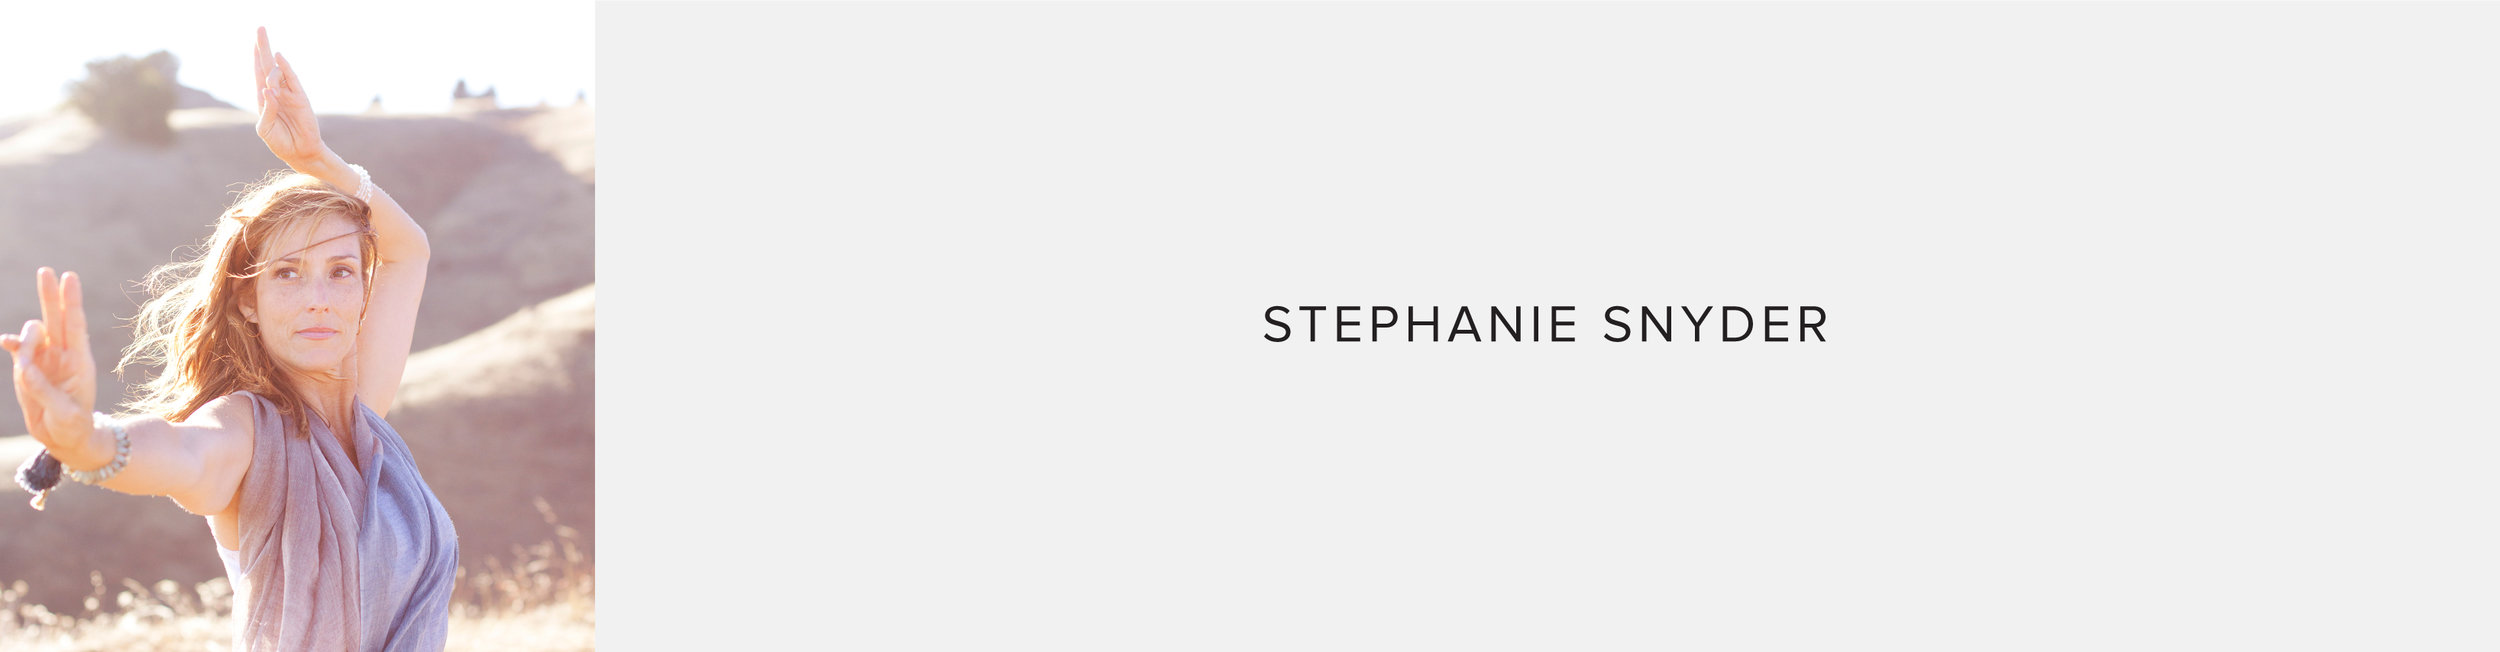 Meet-Stephanie-Snyder.jpg